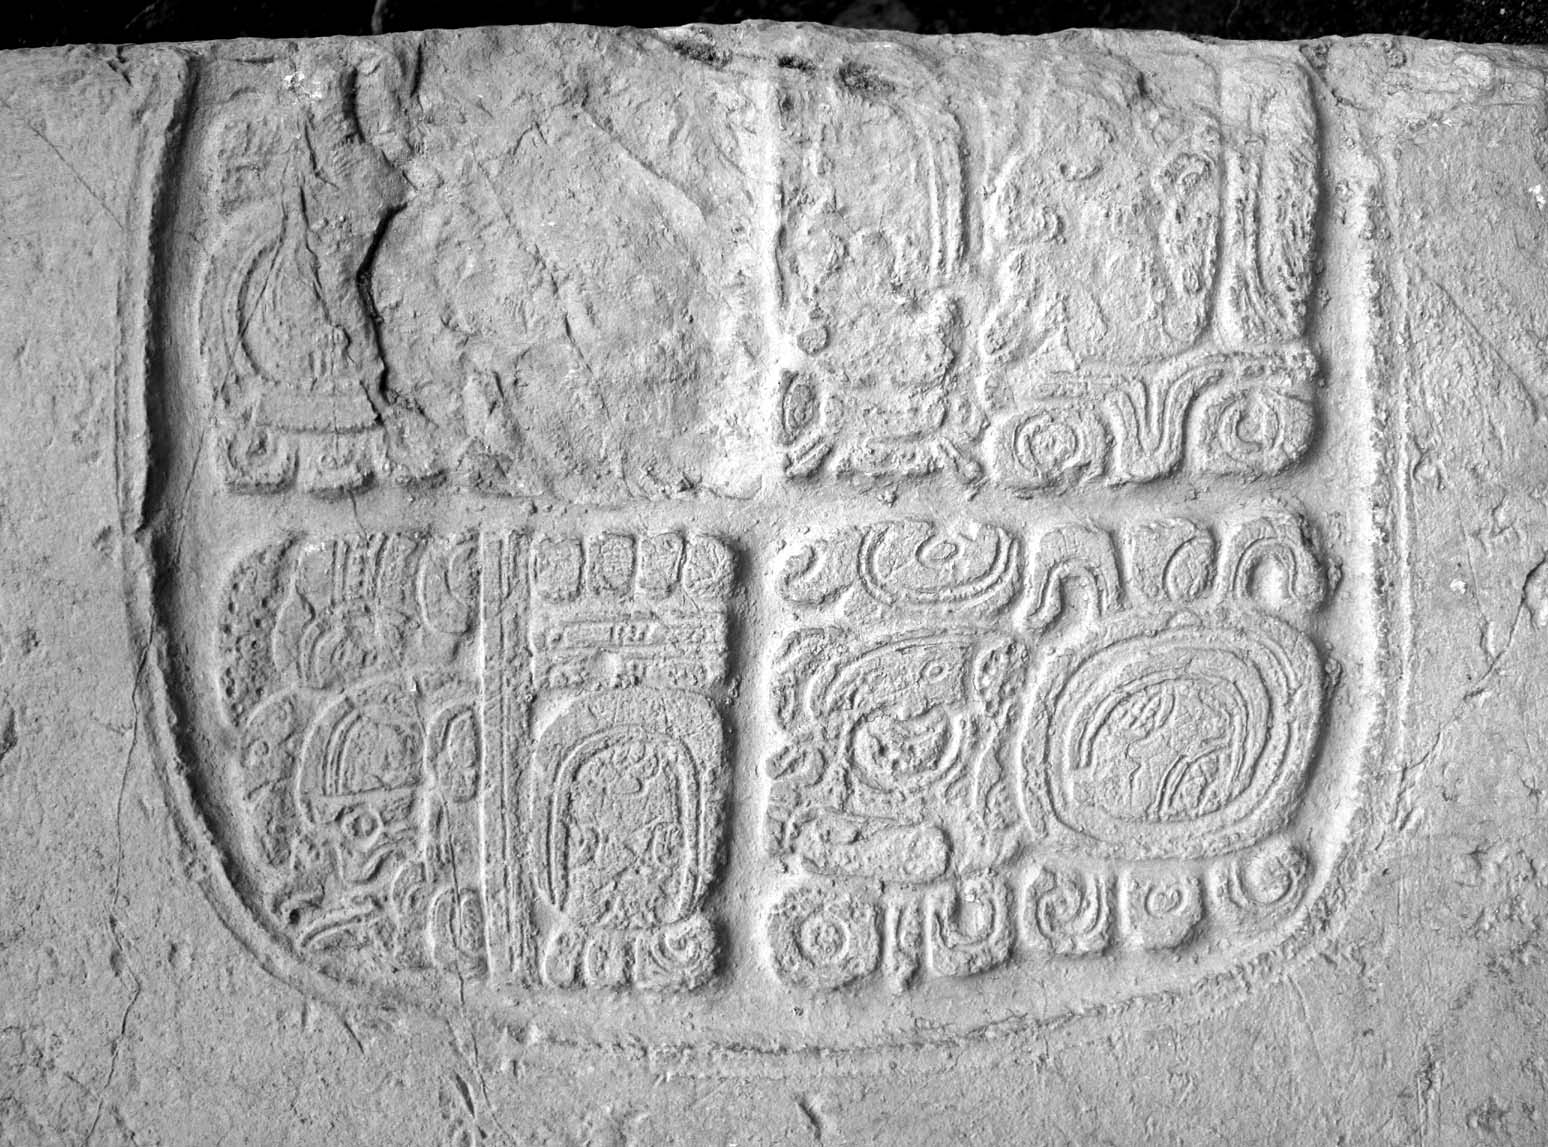 Belize Mayan tomb